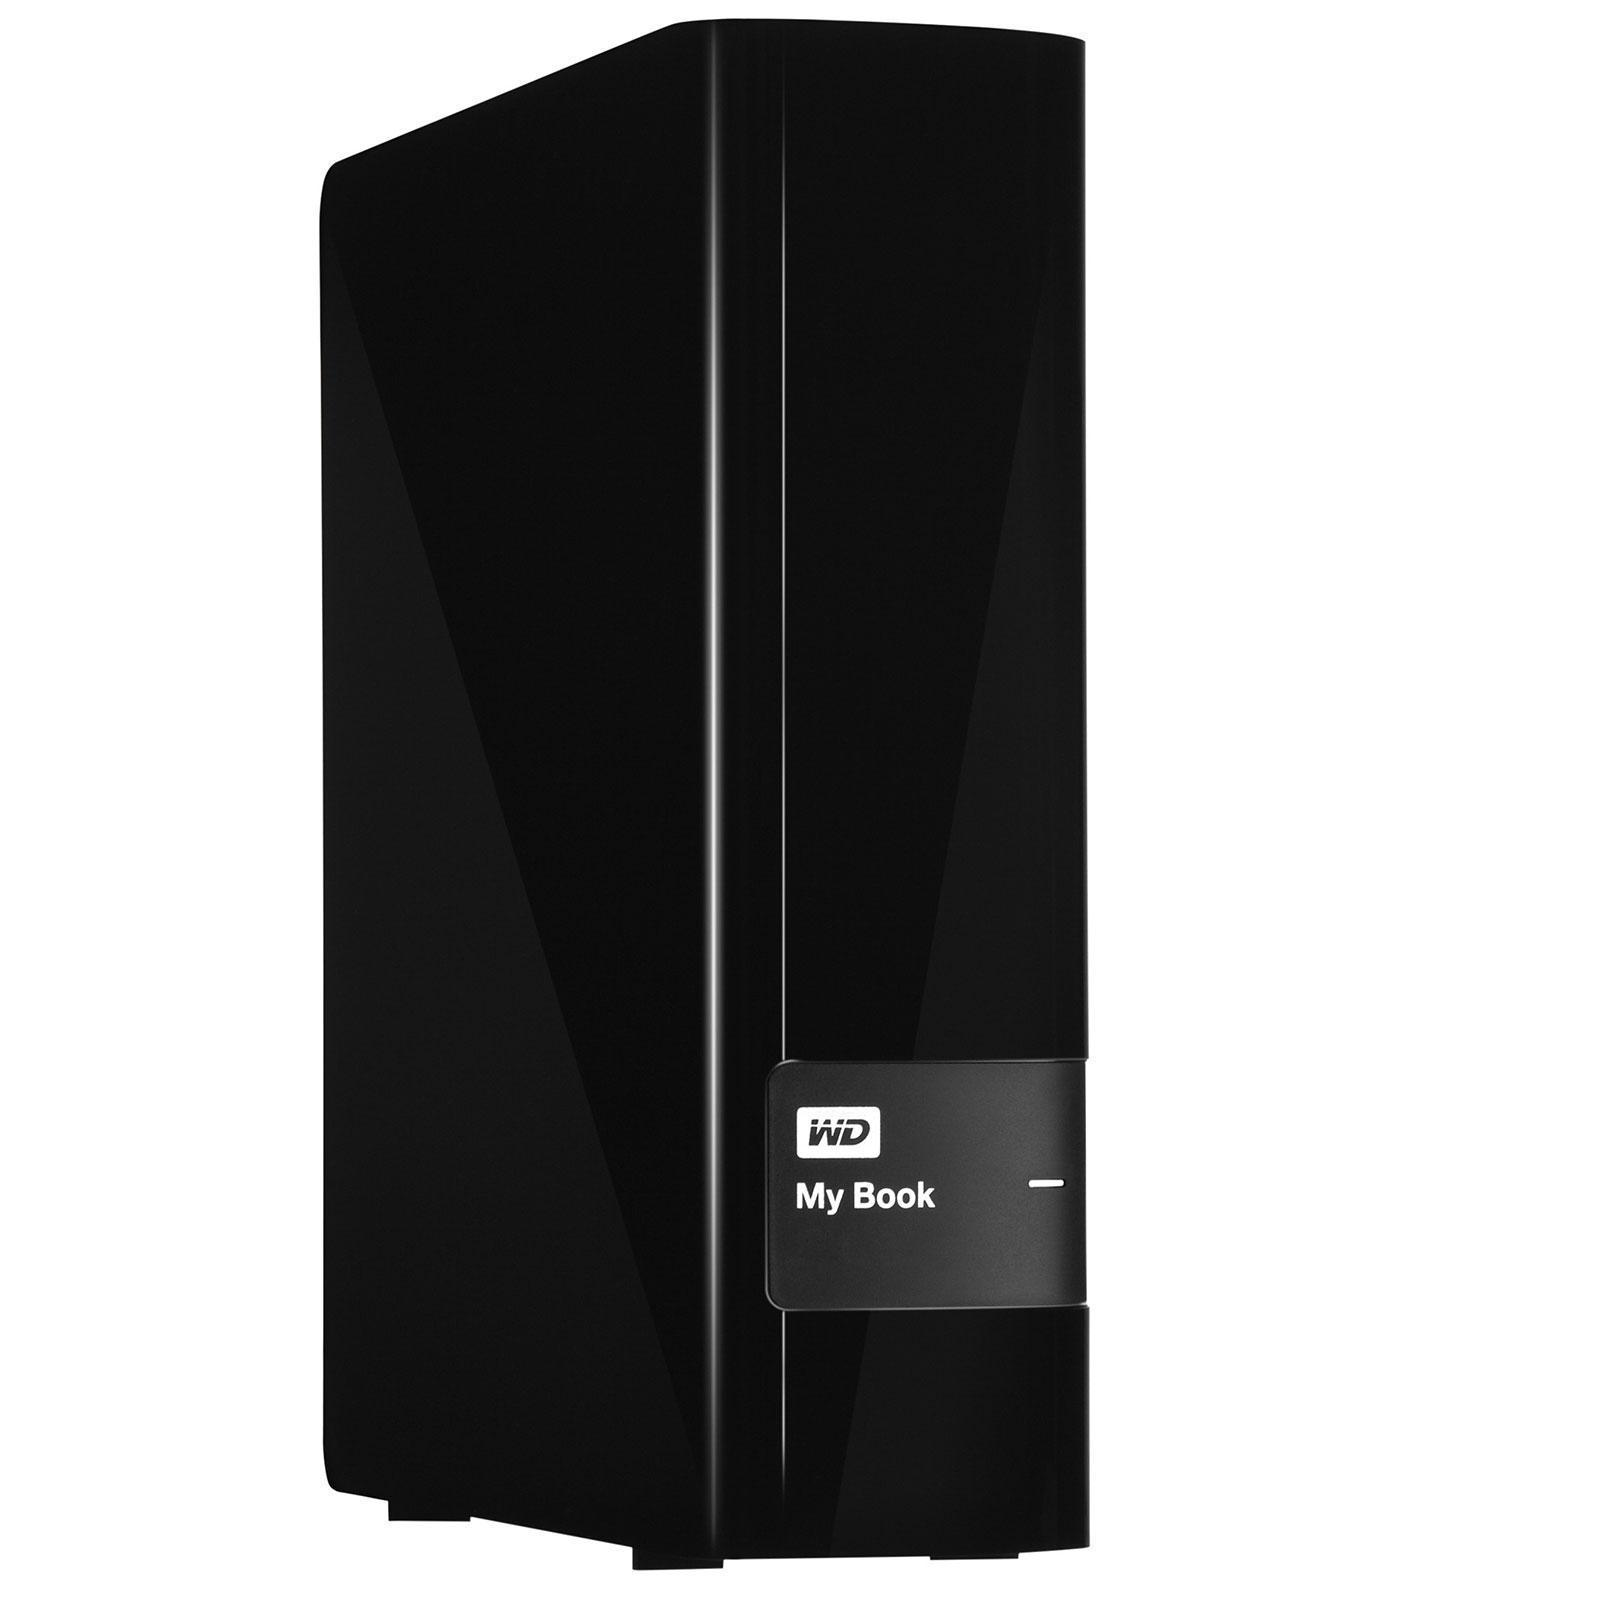 Western Digital - Disco duro externo WD My Book 4 TB (USB 3.0) para Mac